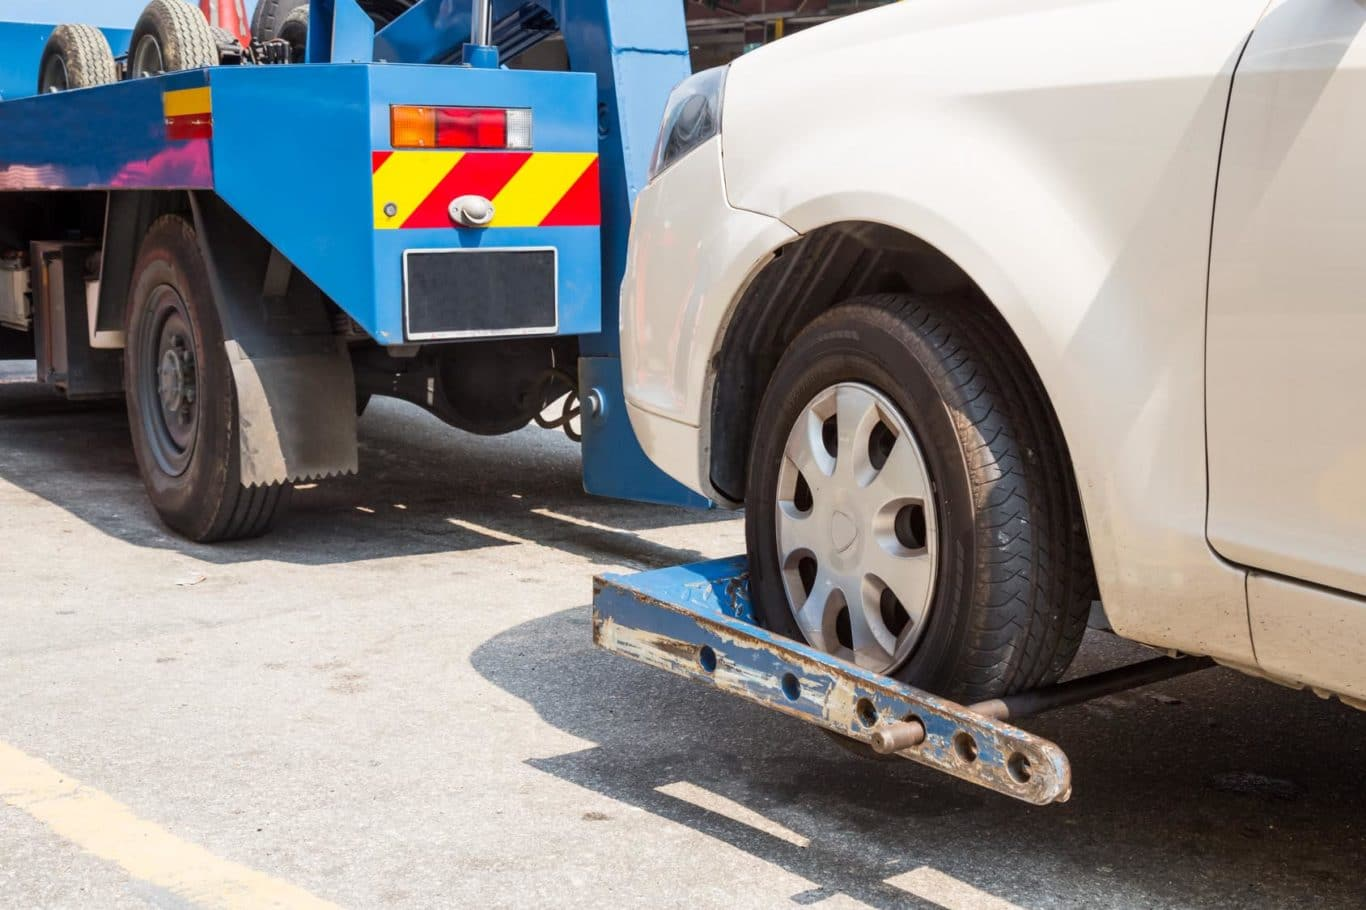 Glenealy, County Wicklow expert Roadside Assistance services